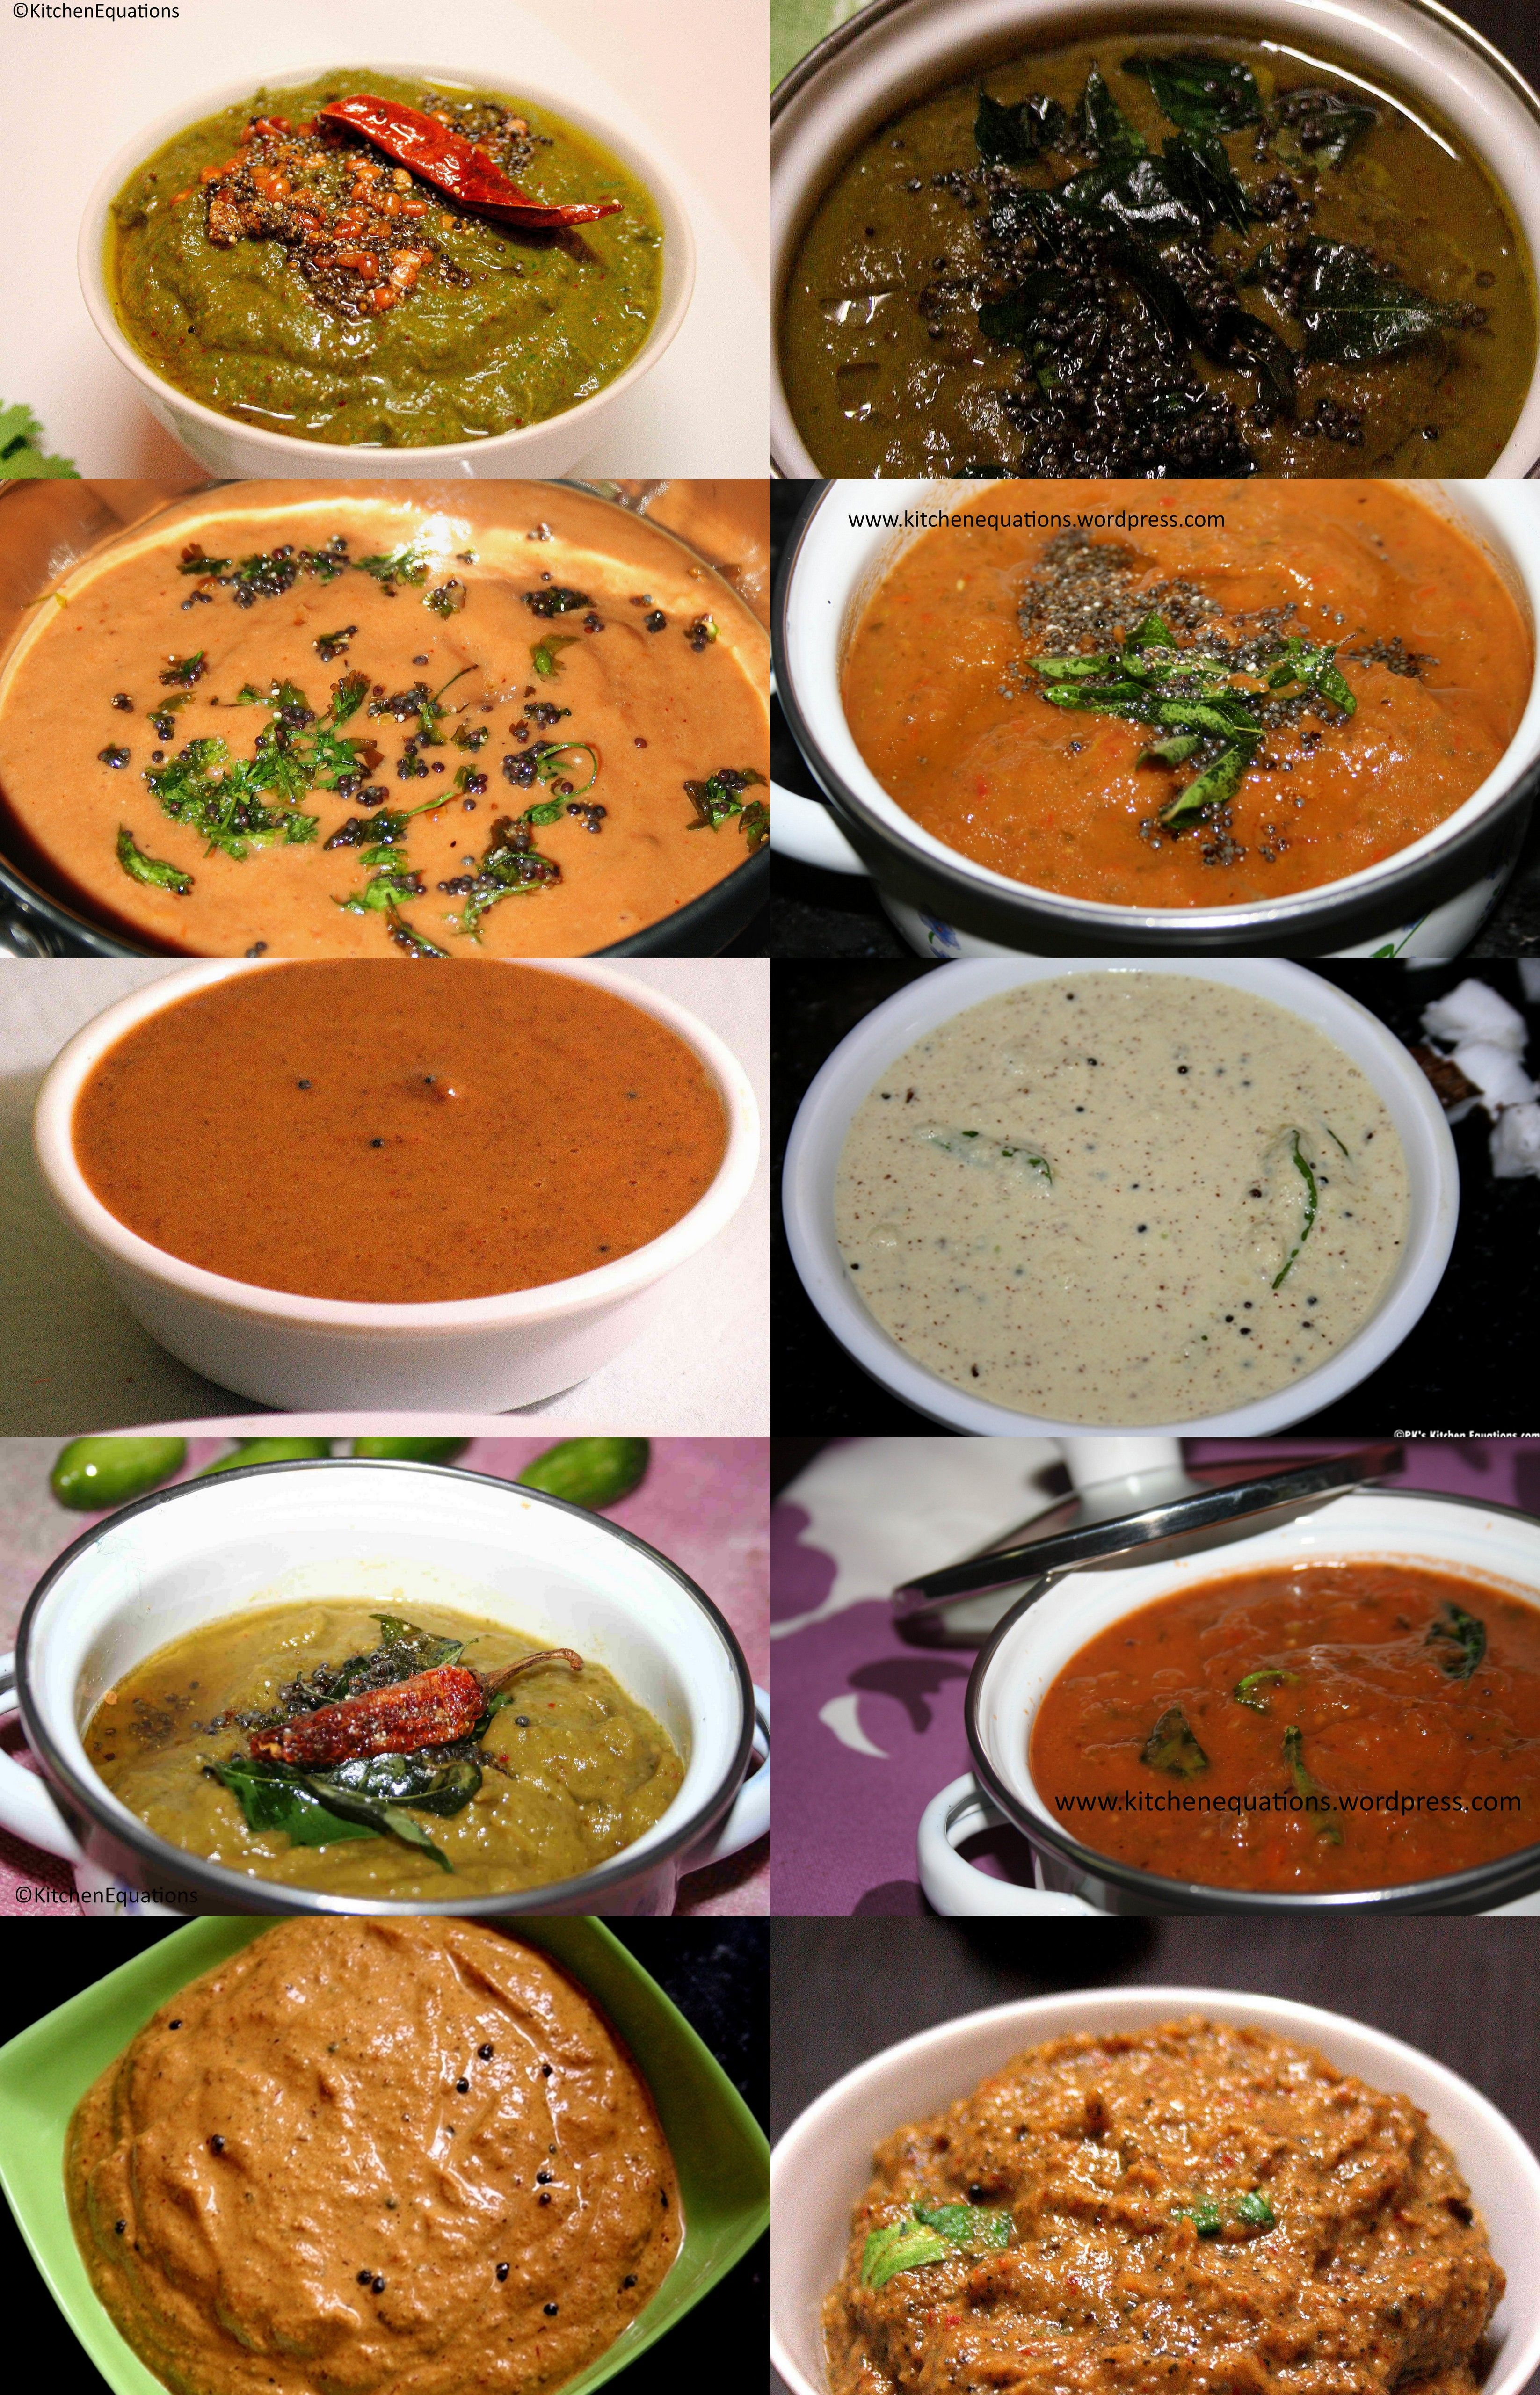 10 south indian chutney recipes easy and super tasty for any 10 south indian chutney recipes easy and super tasty for any typical breakfast forumfinder Gallery